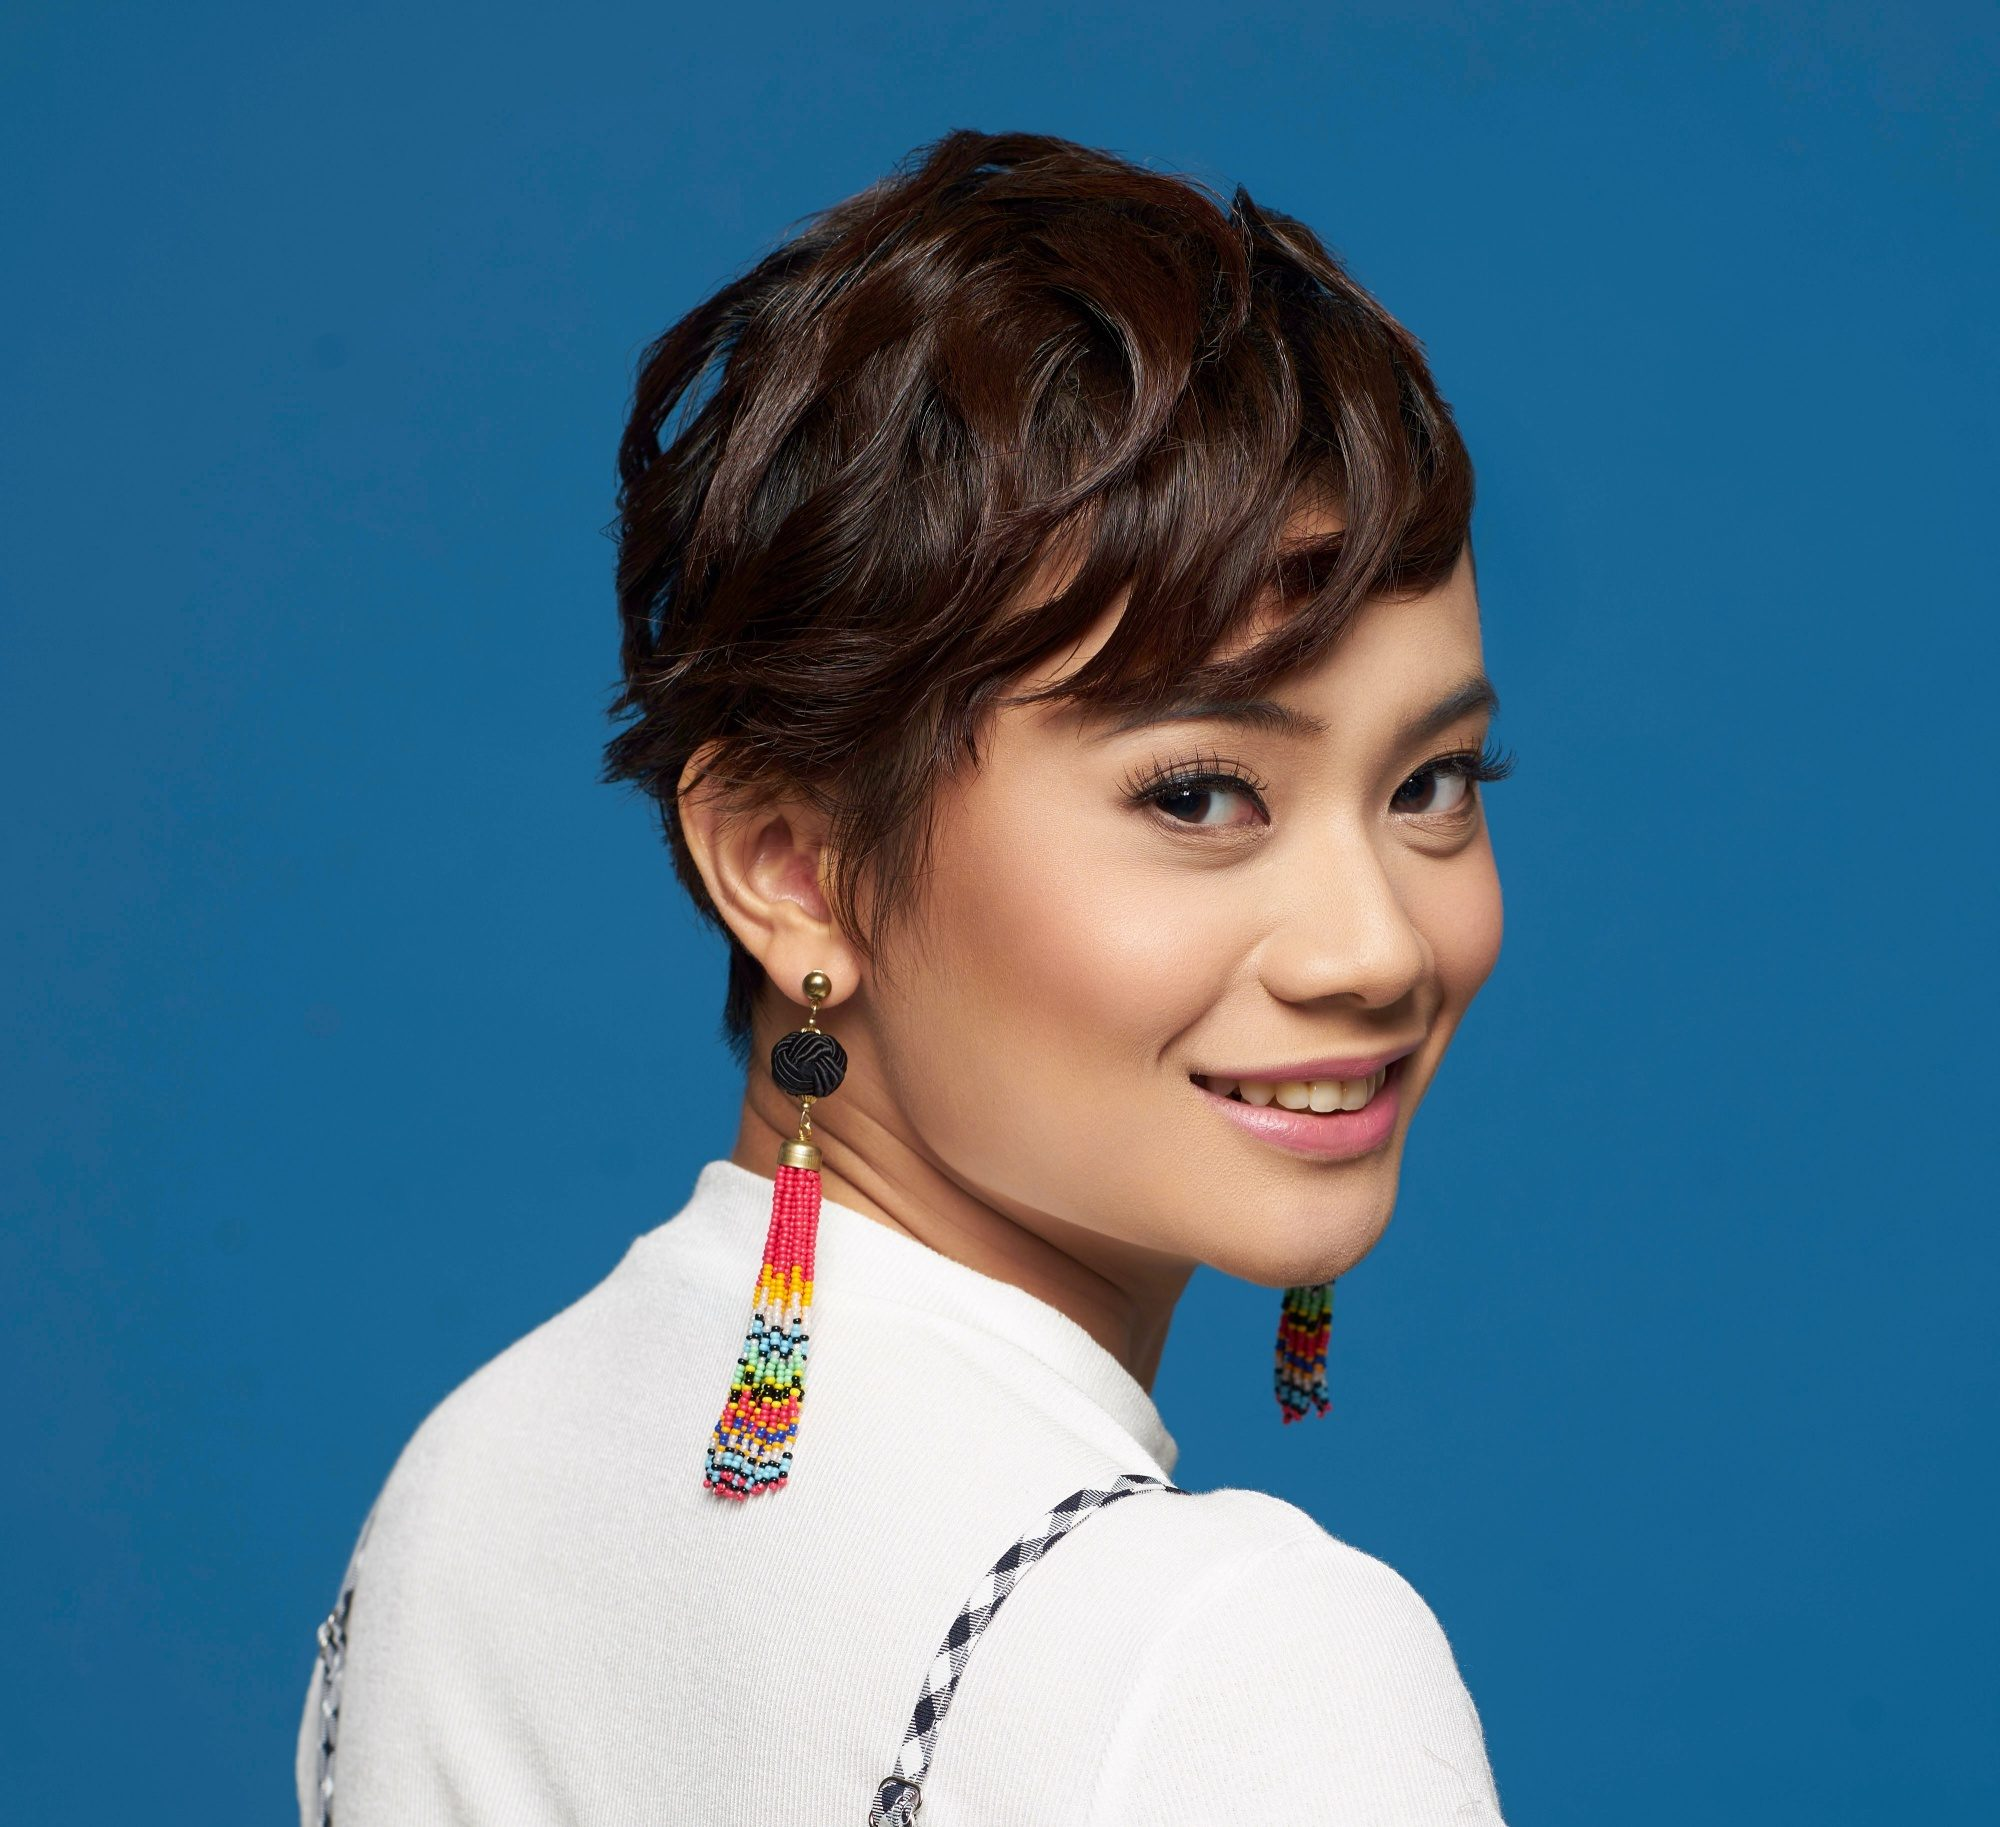 How to use hair wax: Closeup shot of an Asian woman with short dark pixie cut wearing a white shirt and long earrings